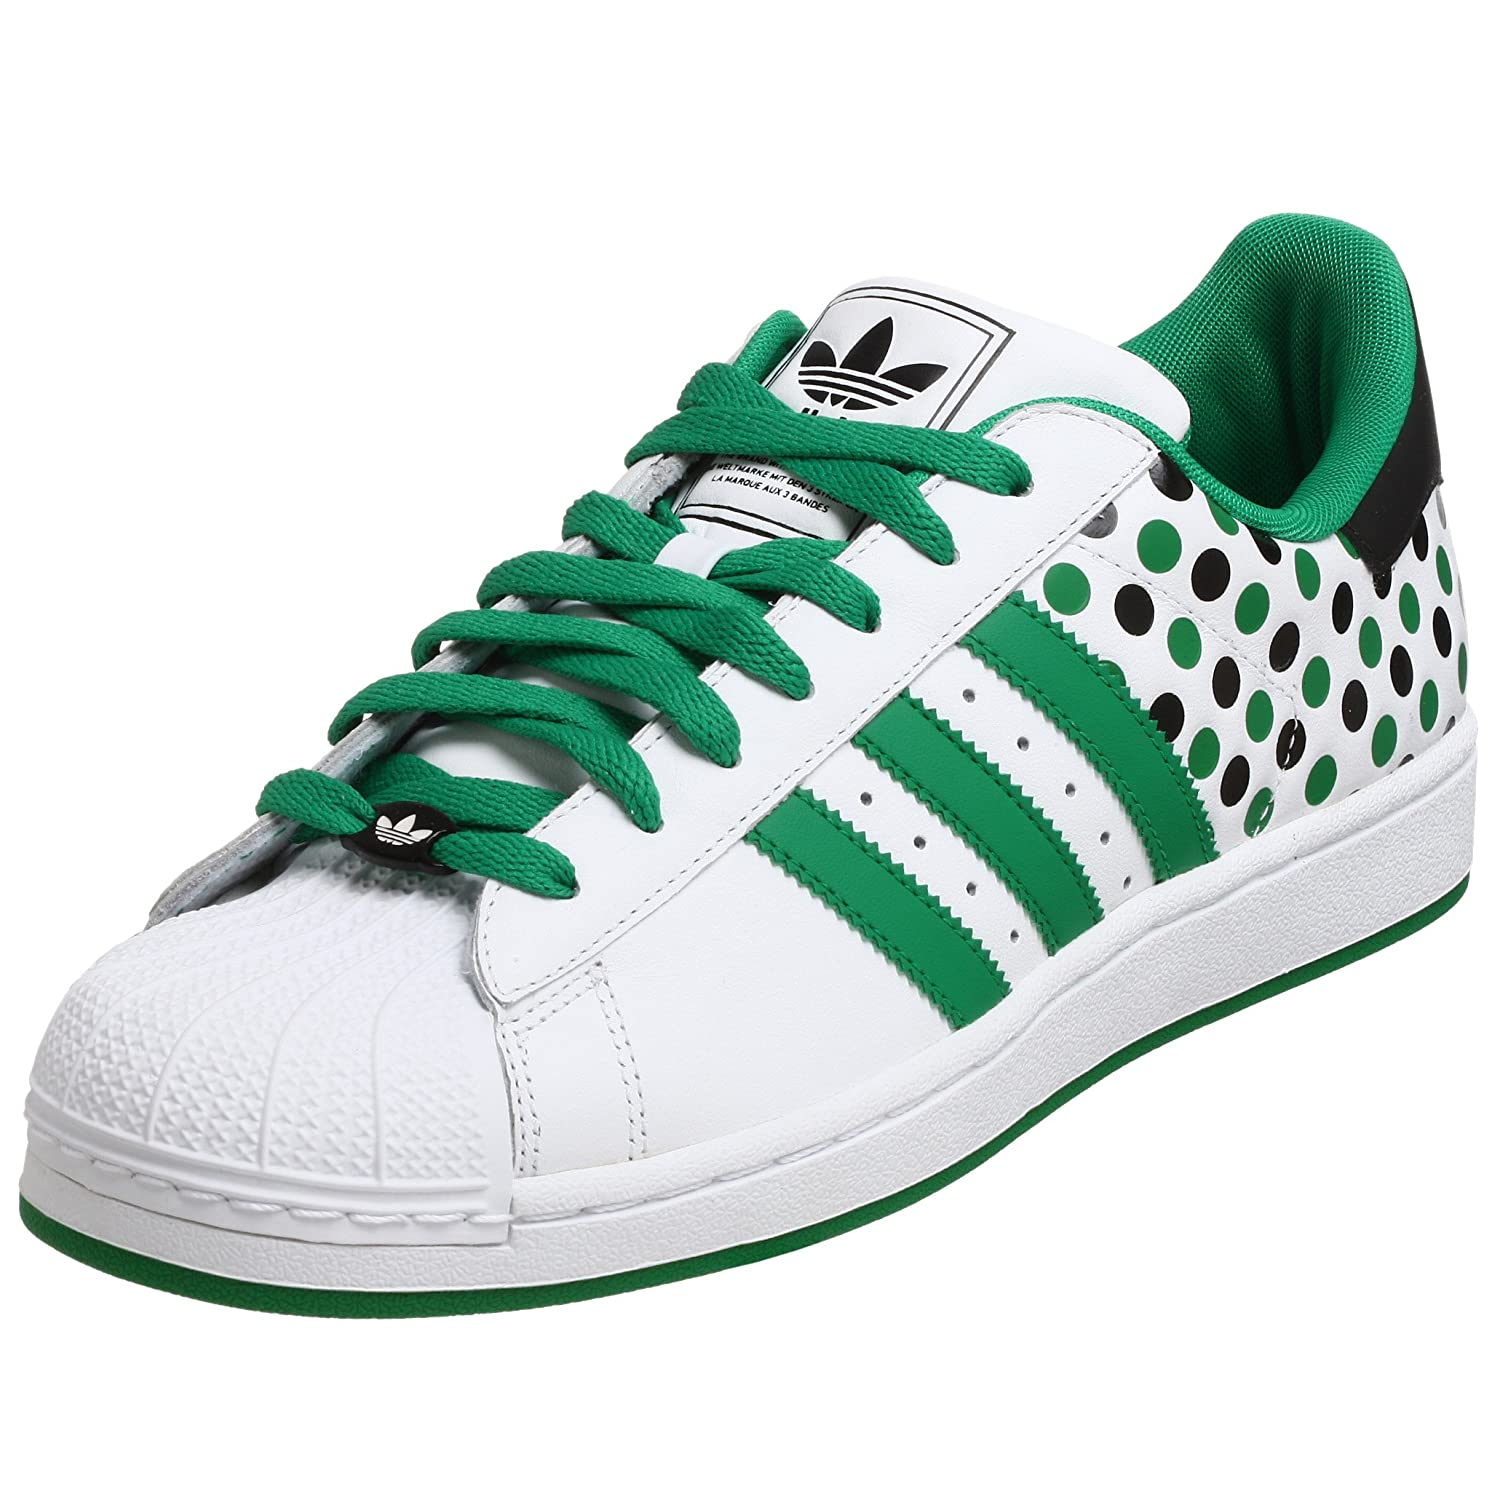 Adidas Shoes Clearance